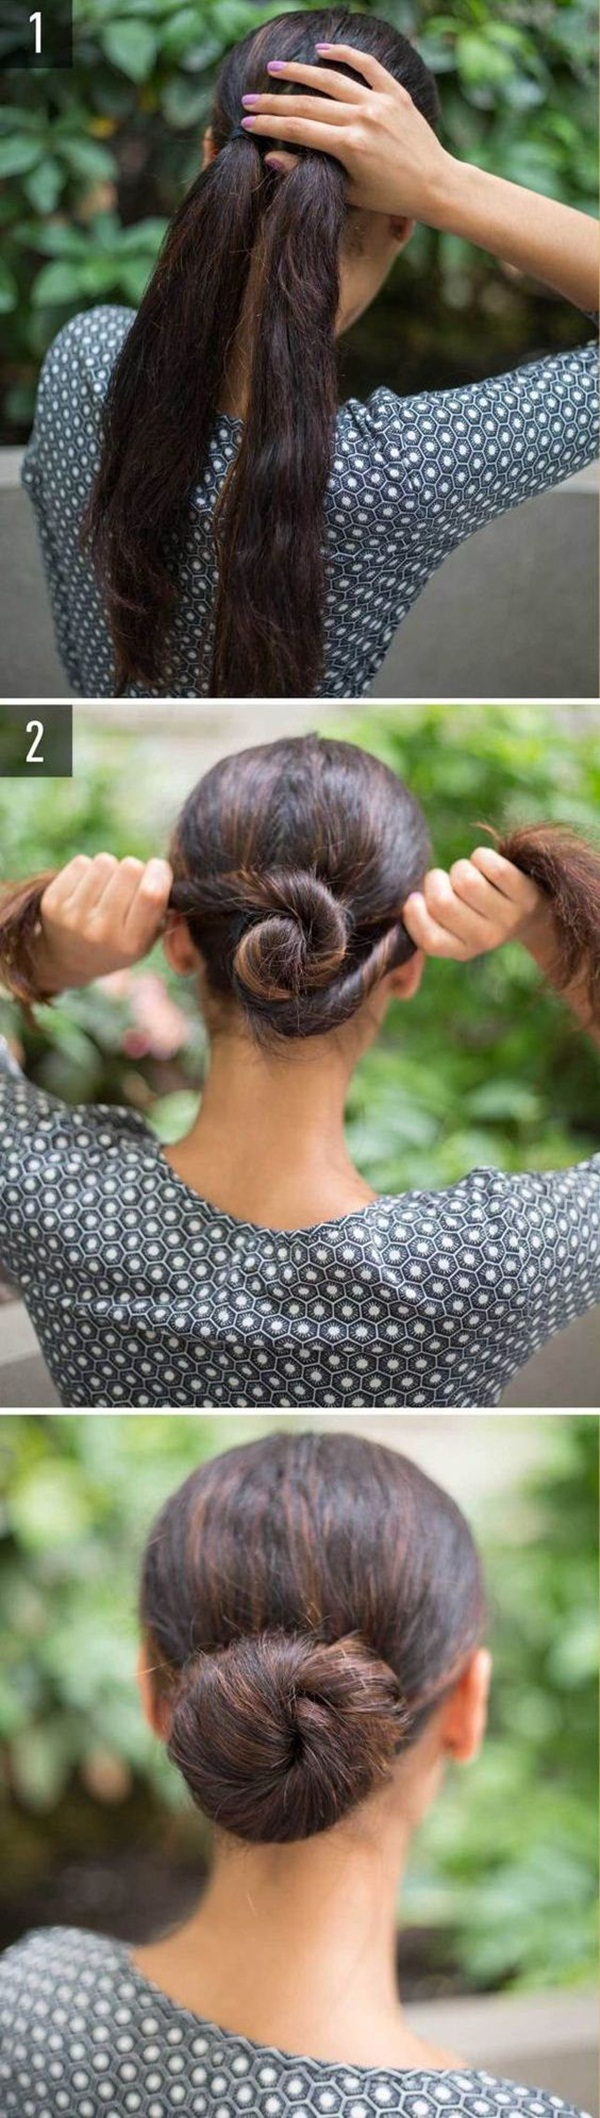 Easy Hairstyles For School (8)